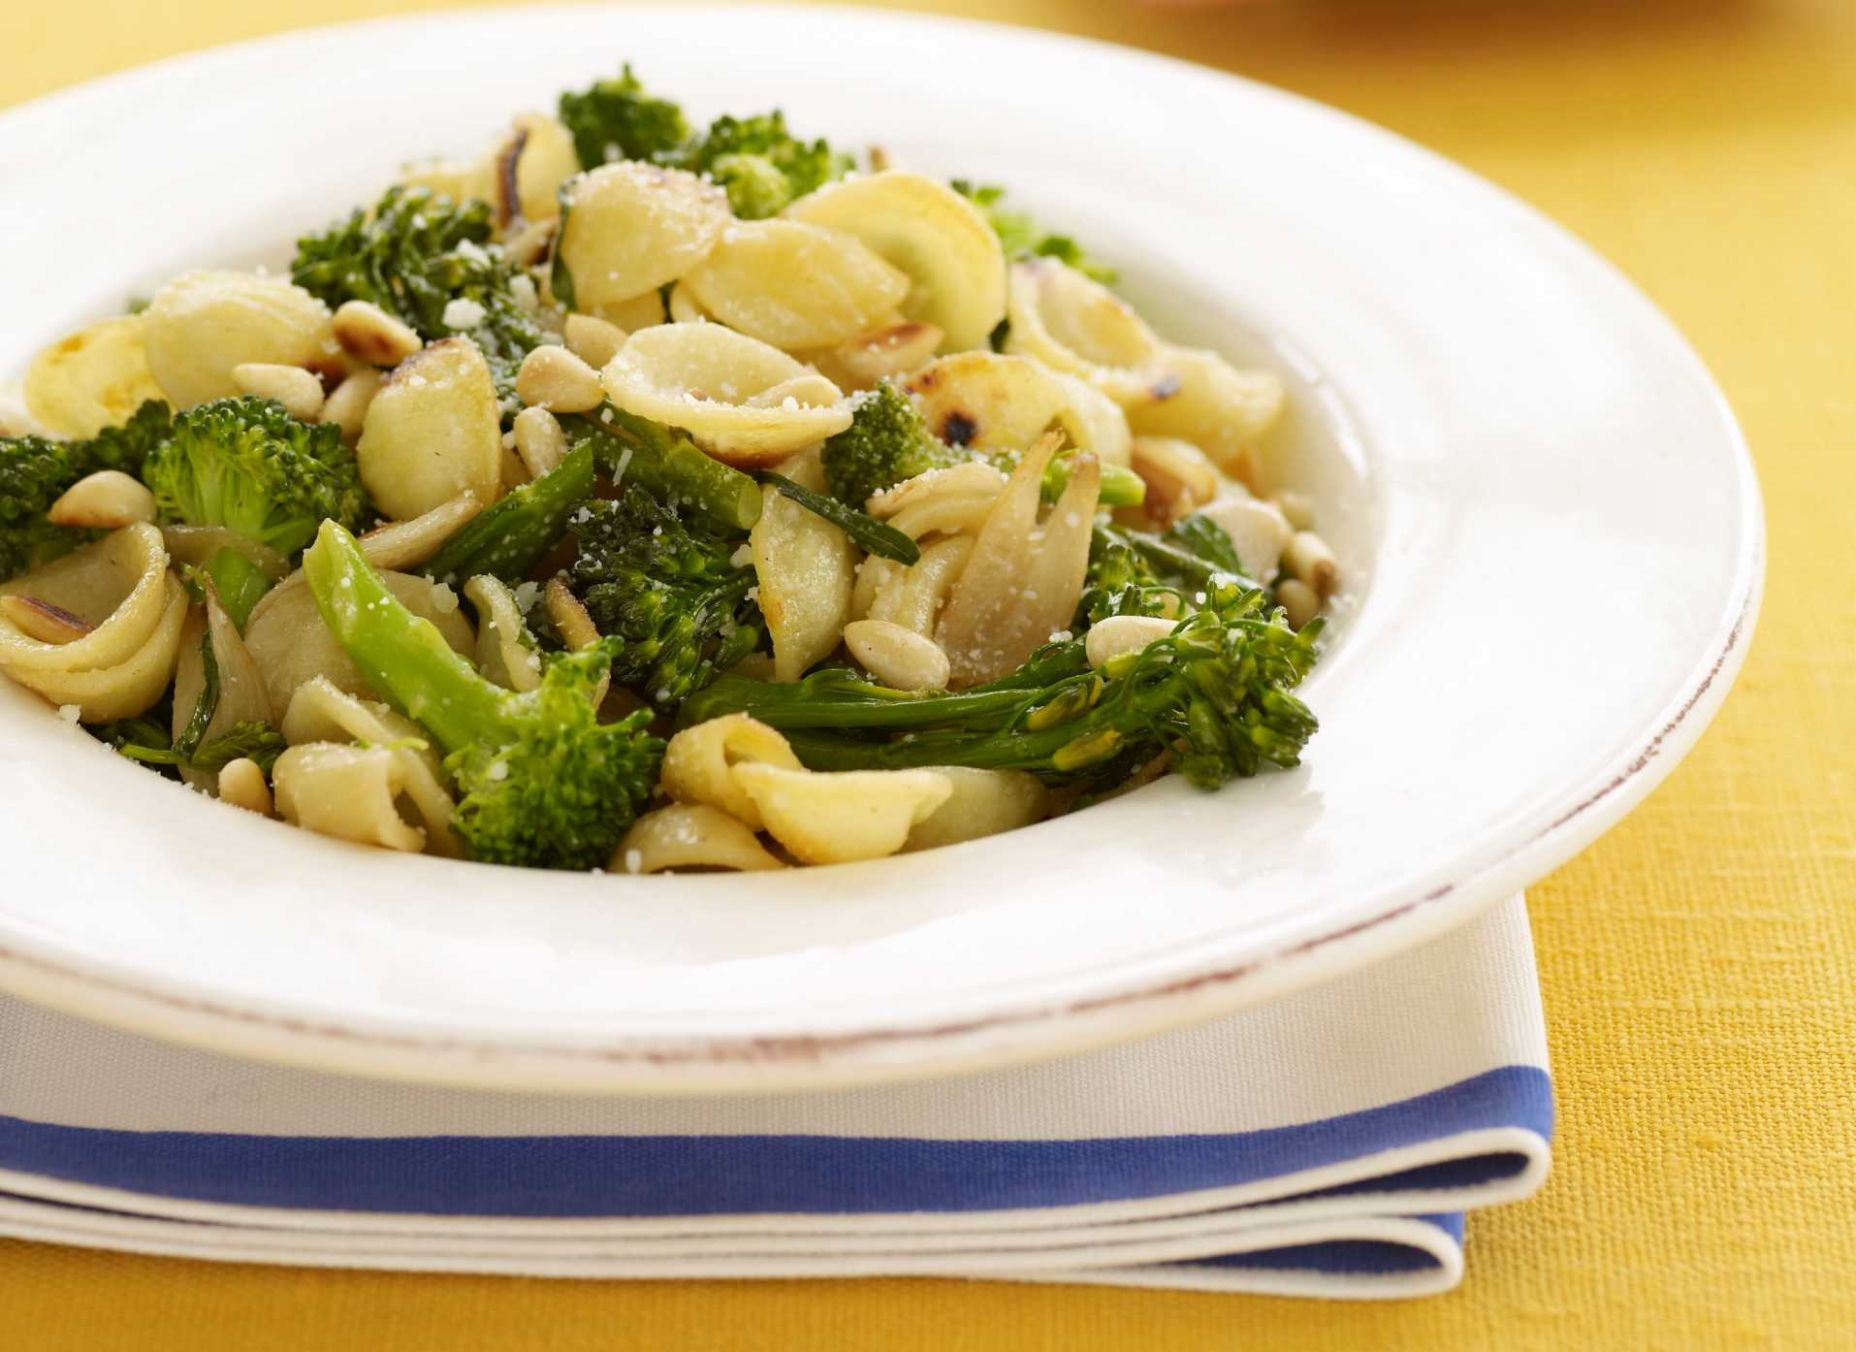 The Best Healthy Vegetarian Pasta Recipes - Pasta Recipes Healthy Vegetarian